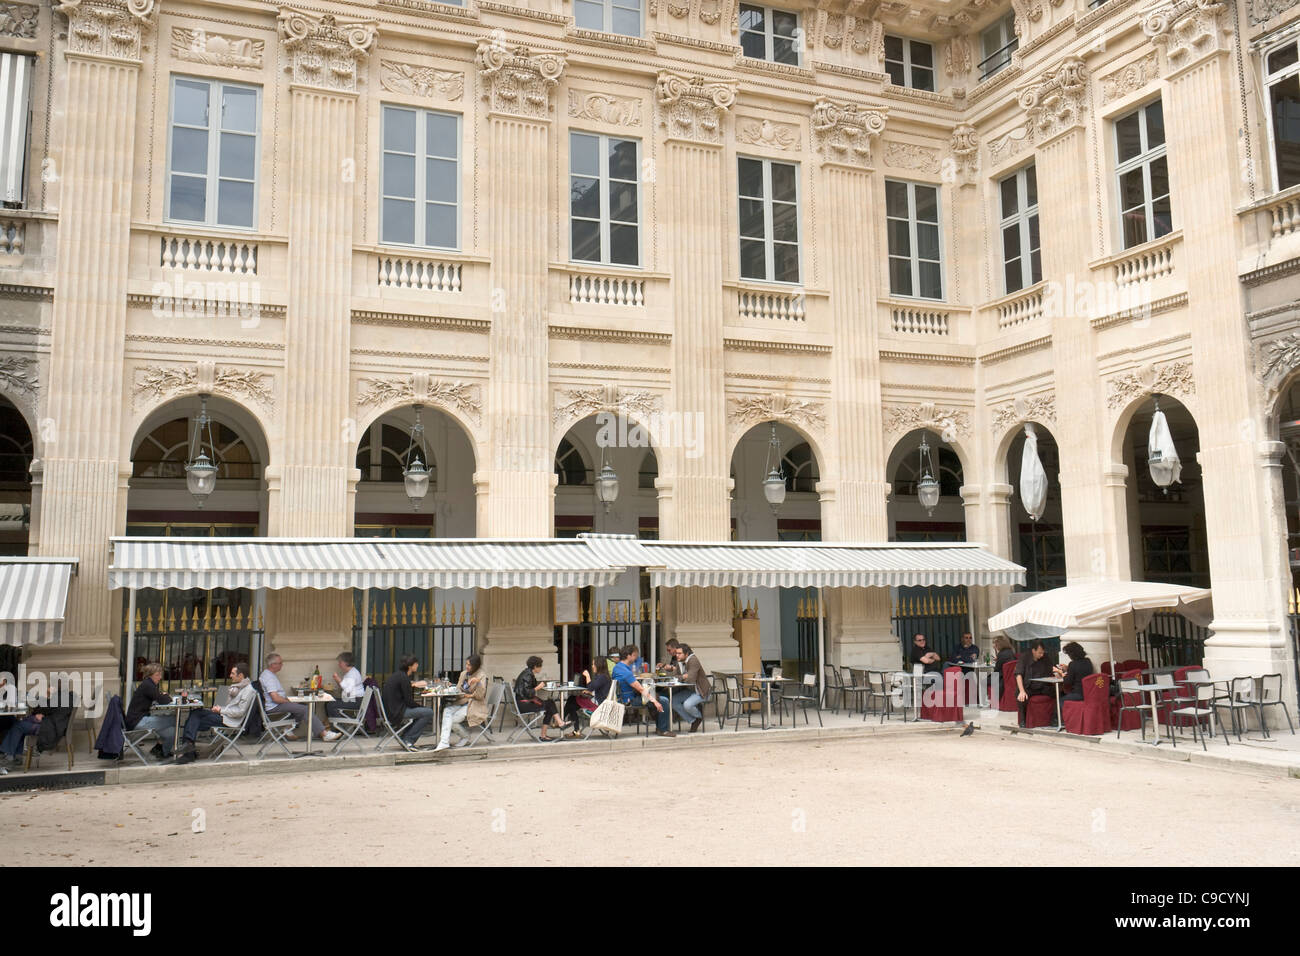 Caf Restaurant Jardins Du Palais Royal Paris France